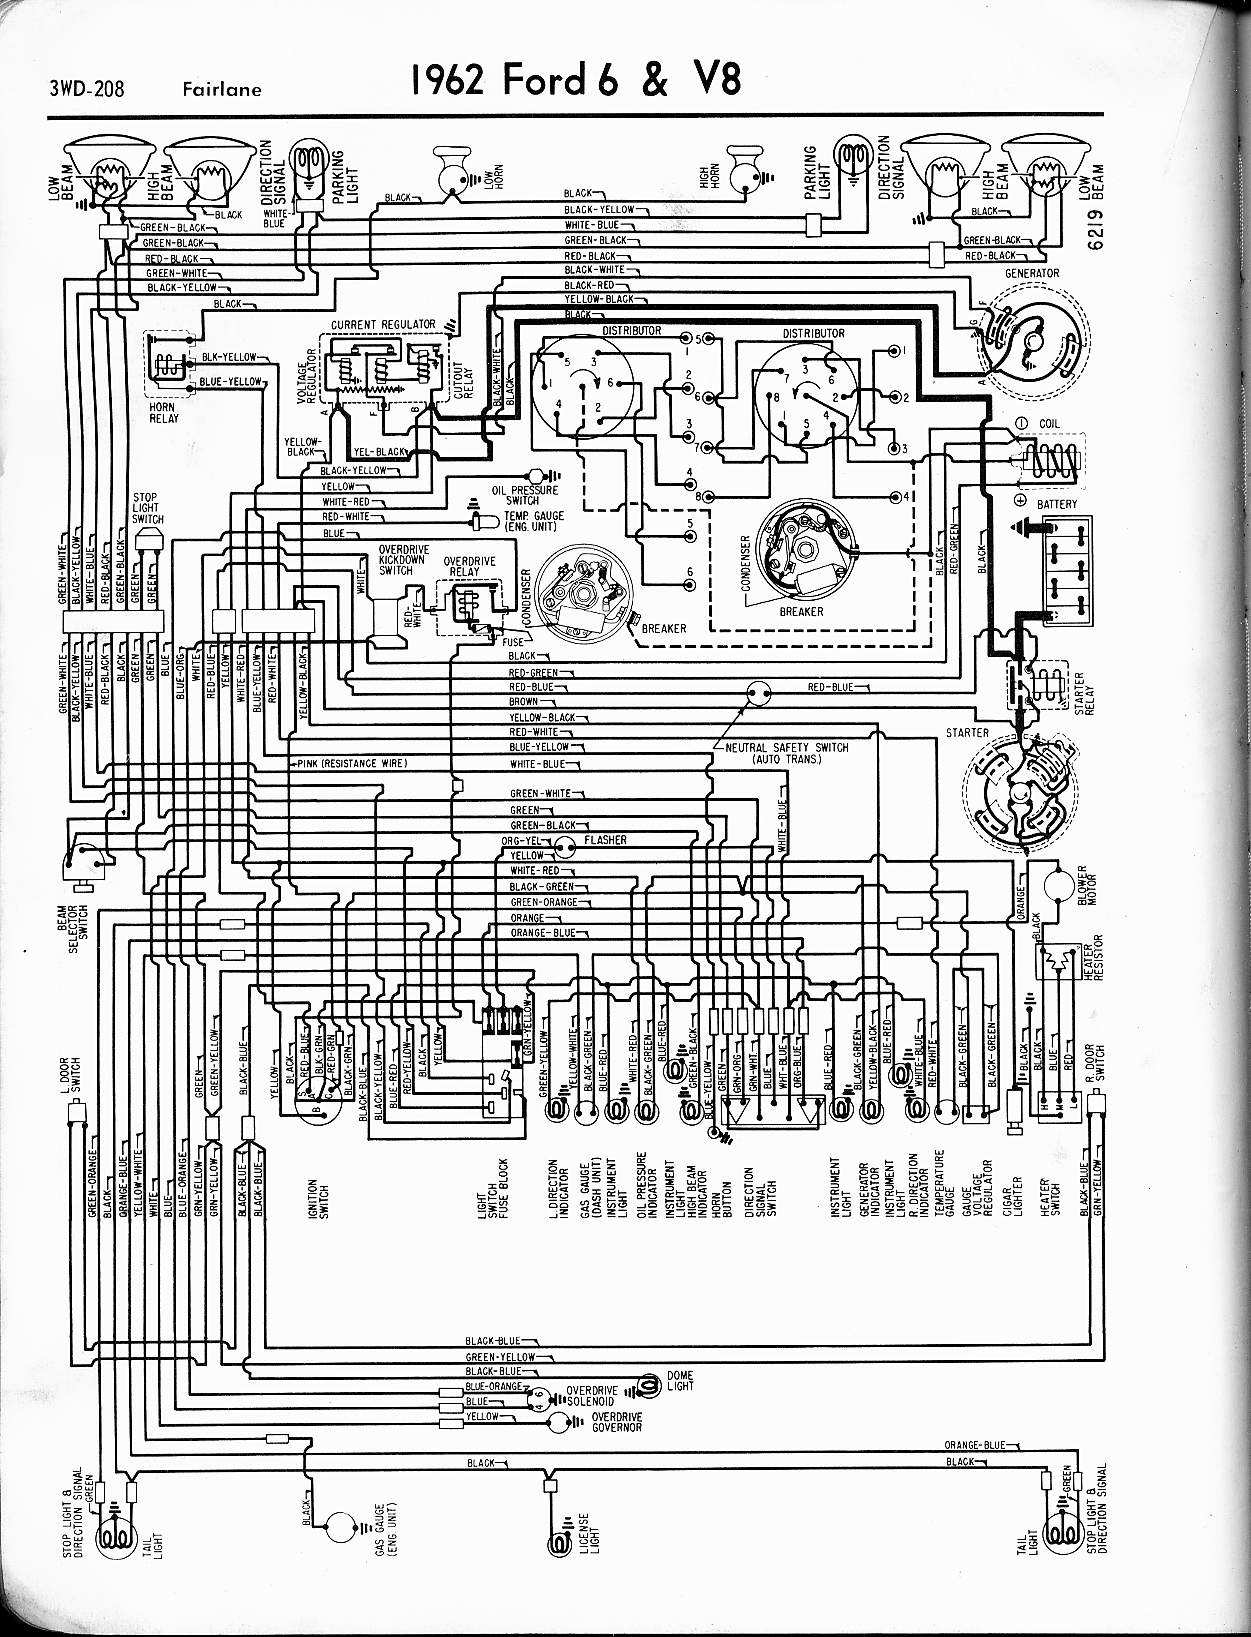 57 65 ford wiring diagrams rh oldcarmanualproject com 1962 Ford Thunderbird Wiring Diagram 1962 Ford Thunderbird Wiring Diagram